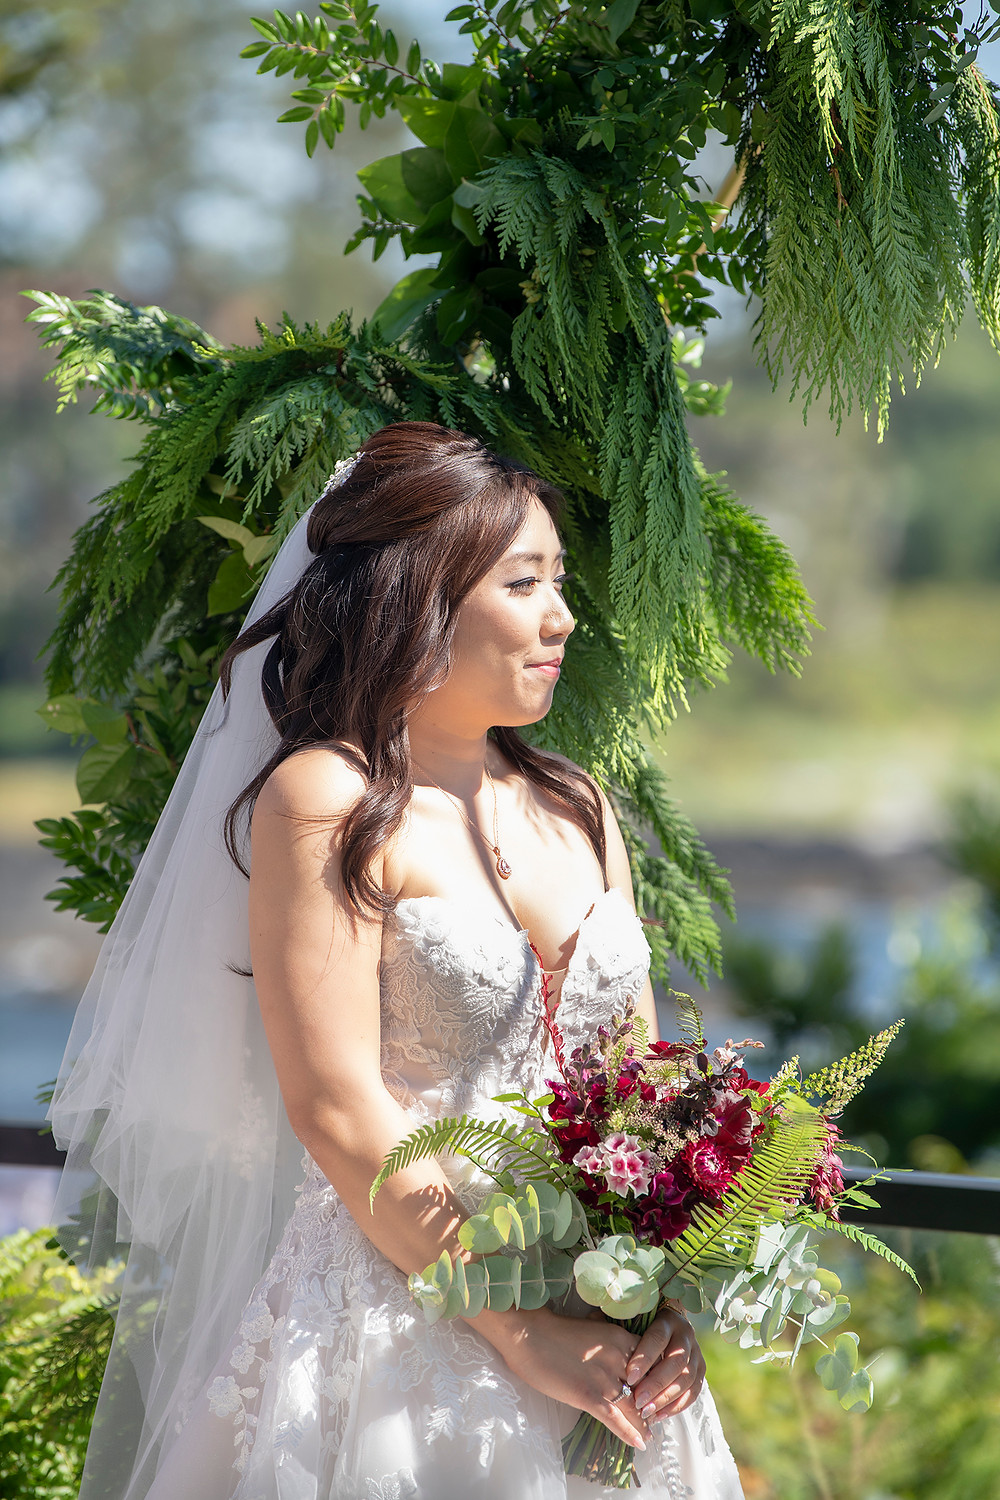 Bride under archway at her Ucluelet wedding at Black Rock Resort. Photographed by Ucluelet Photographer Kaitlyn Shea.